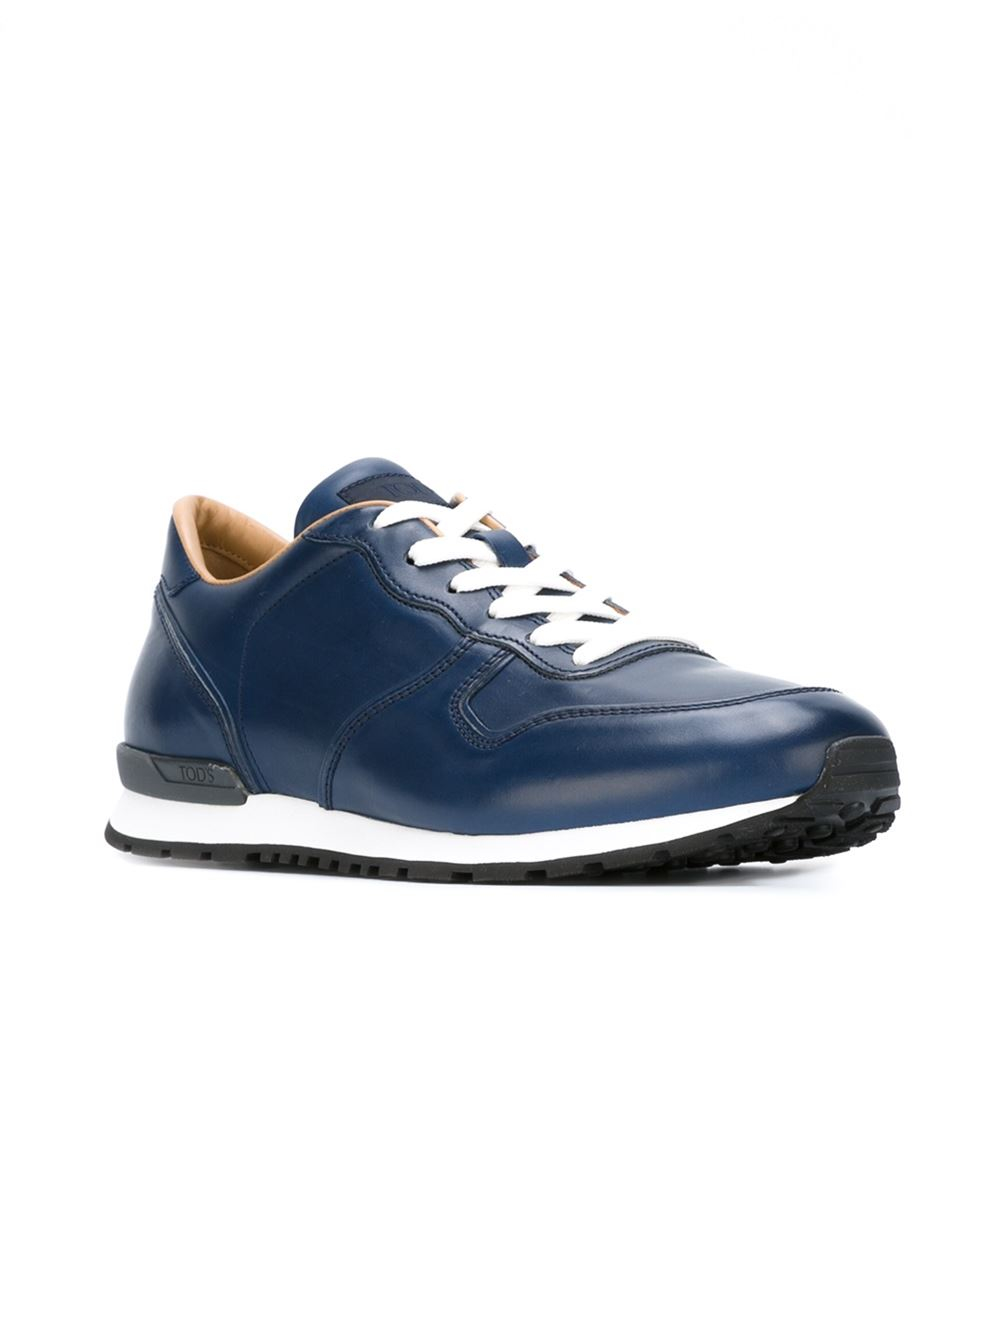 FOOTWEAR - Low-tops & sneakers Tod's bjnvw4mwed